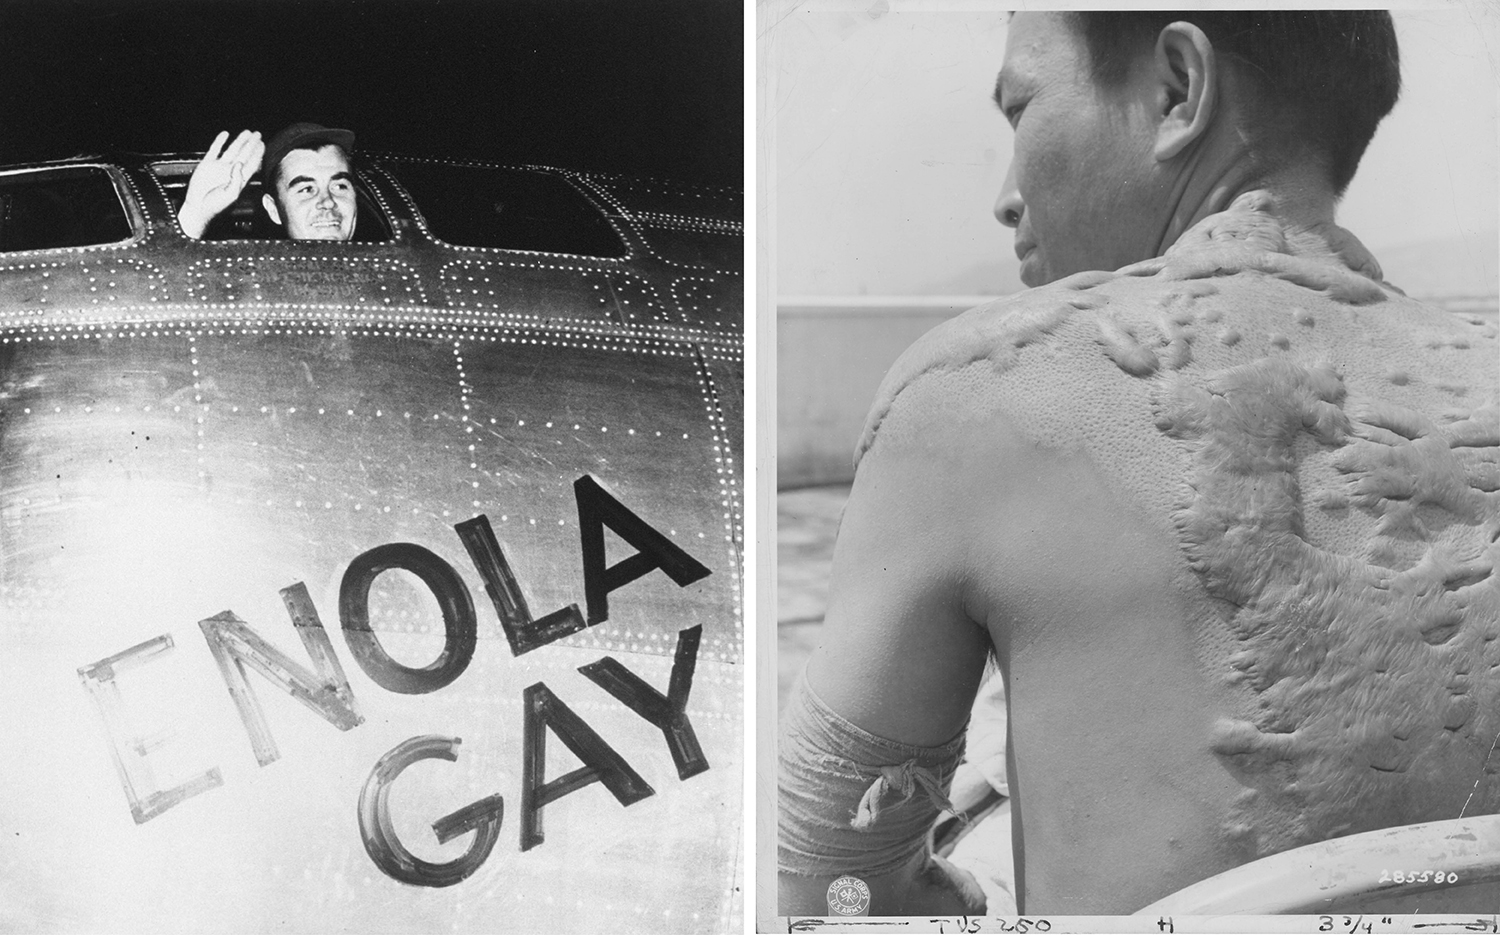 Left: U.S. Air Force Col. Paul W. Tibbets, Jr., pilot of the Enola Gay, the plane that dropped the atomic bomb on Hiroshima, waves August 6, 1945, from his cockpit before takeoff. Right: In 1947, a Japanese casualty shows the keloid scars he received from flash burns during the attack on Hiroshima. National